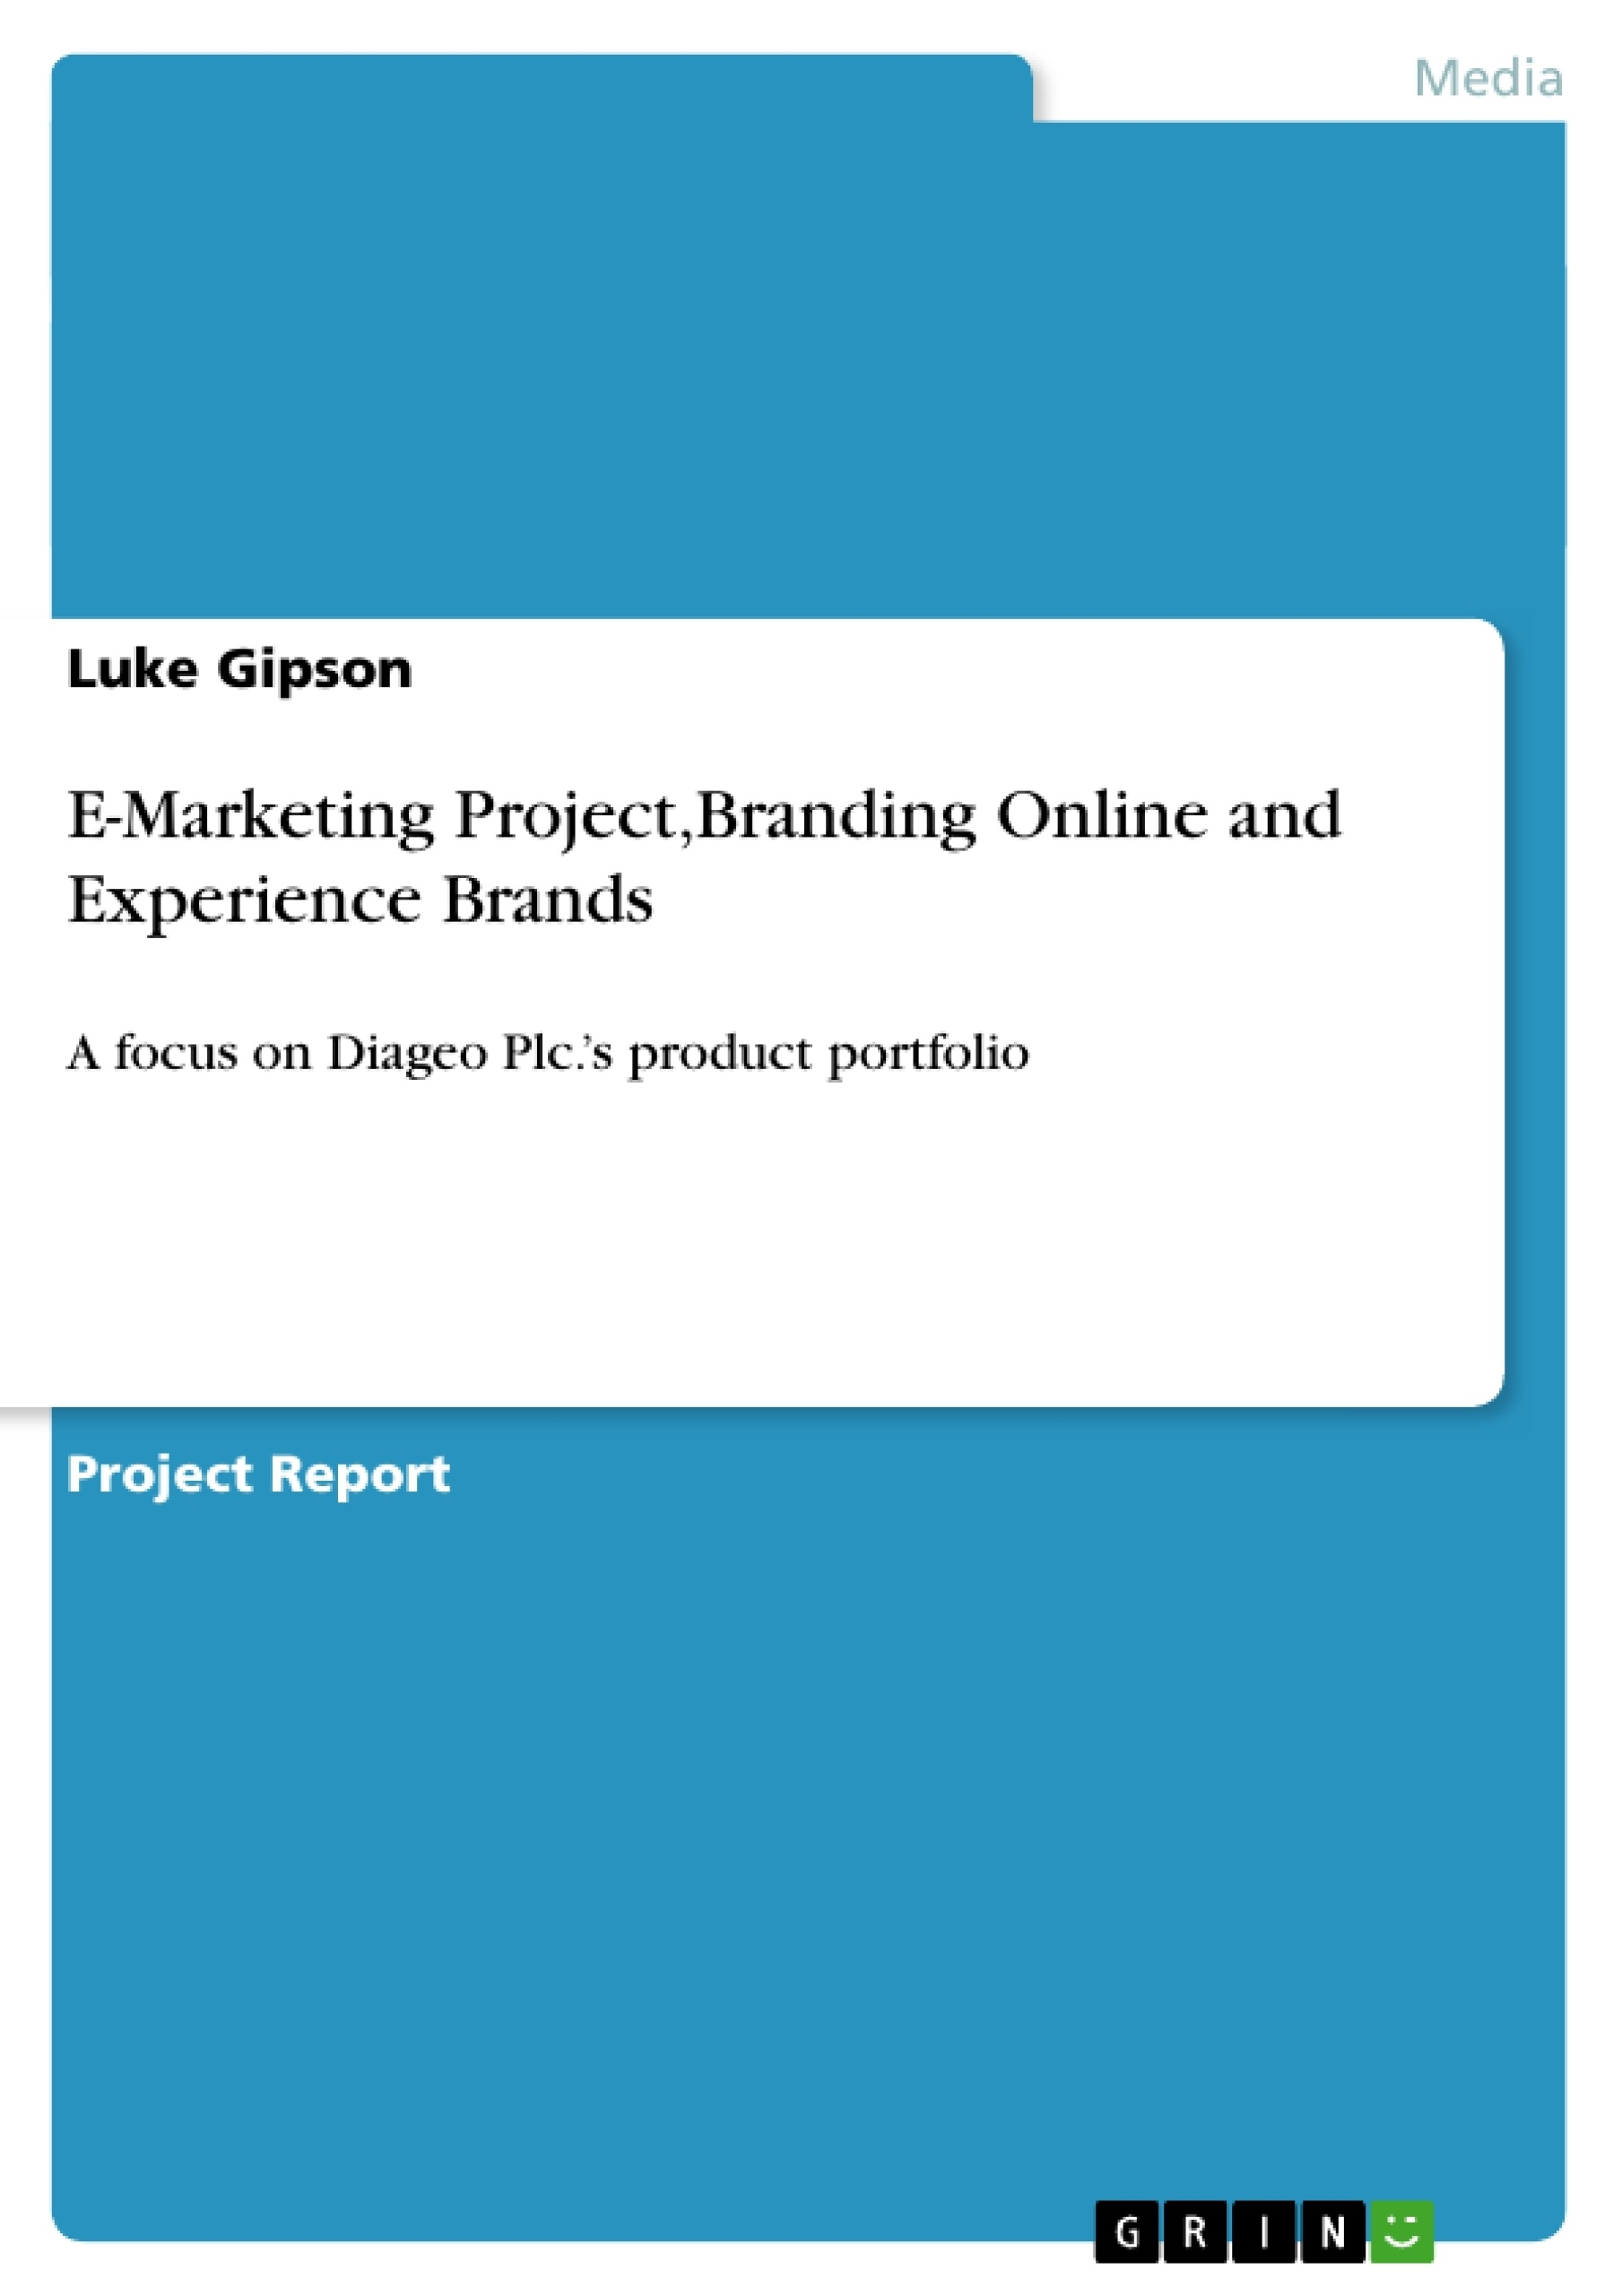 GRIN - E-Marketing Project,Branding Online and Experience Brands